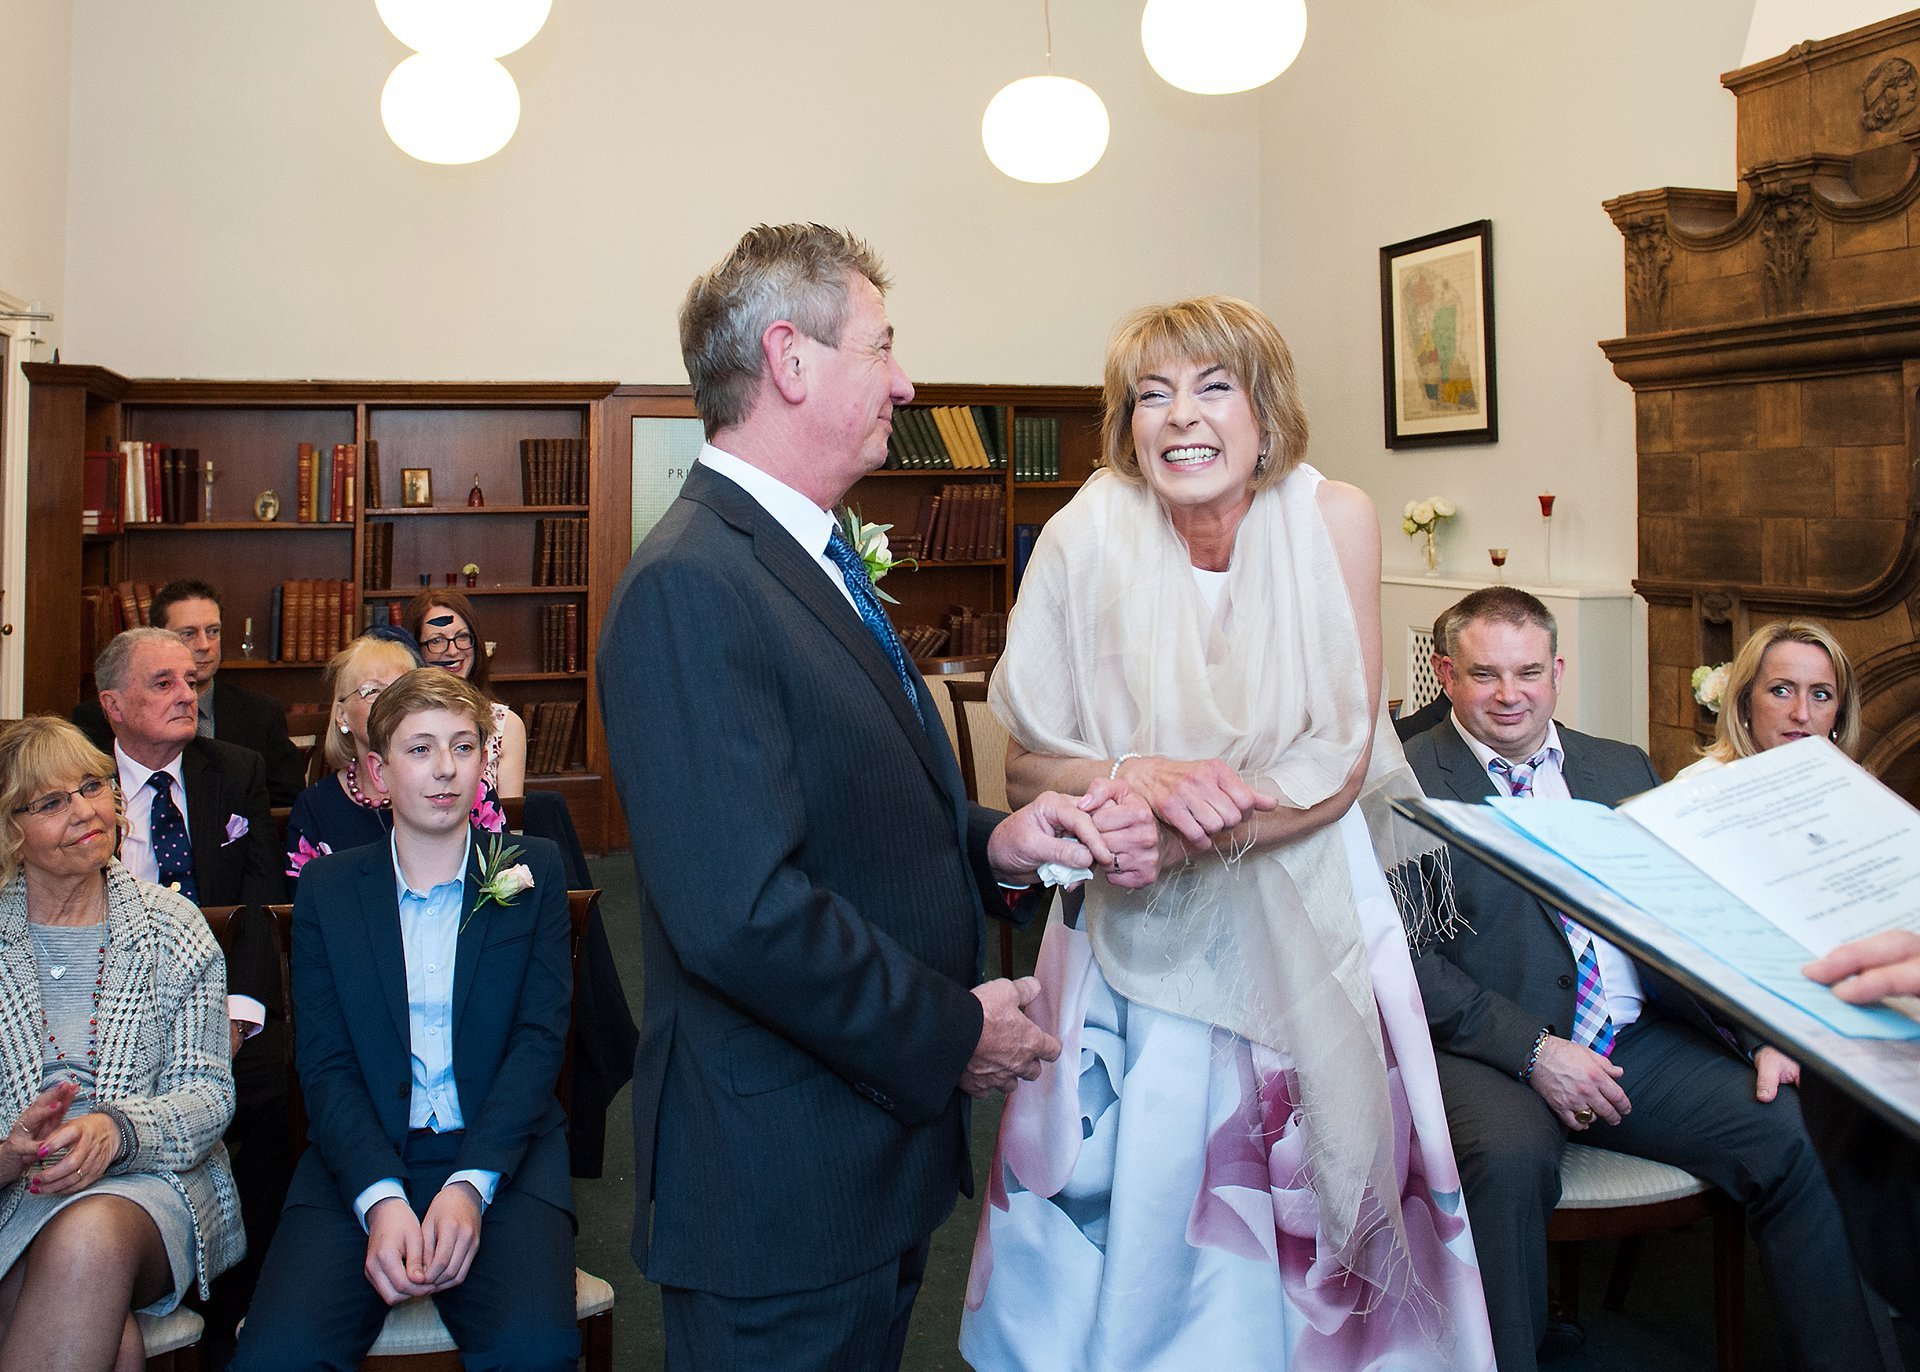 Bride smiles with glee when their marriage is official in Mayfair Library, Westminster, London